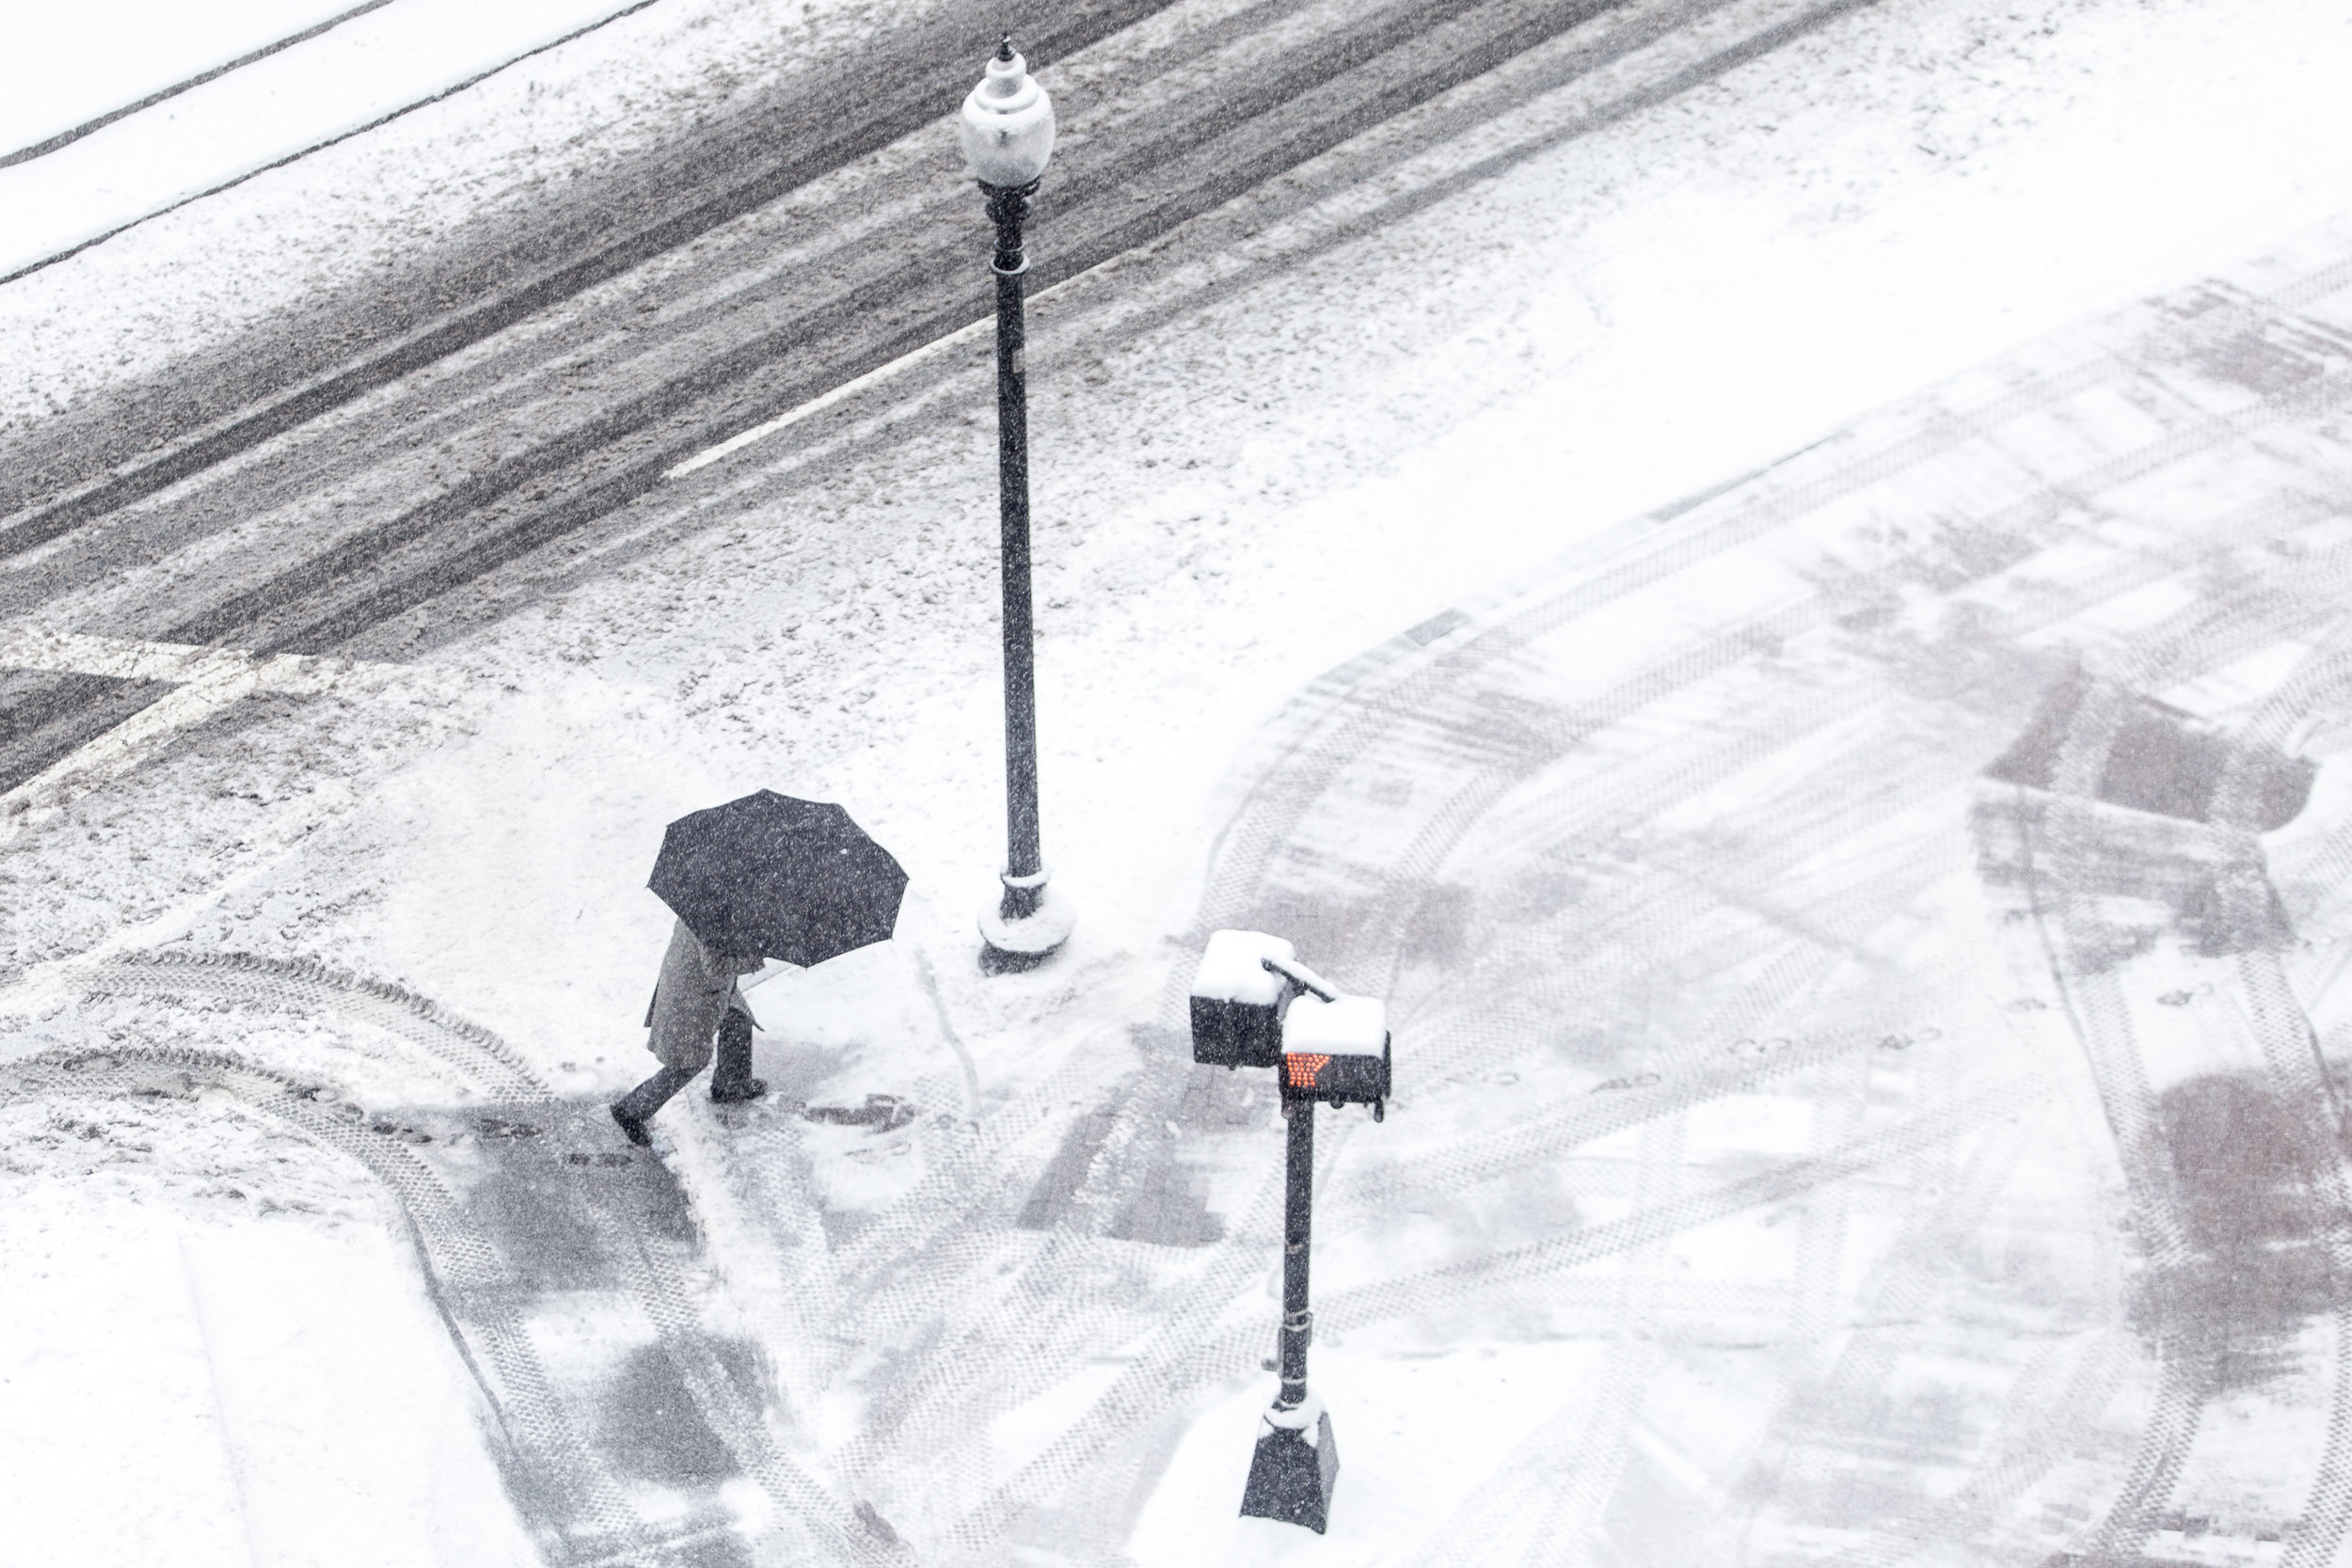 A man shields himself from the snow with an umbrella while crossing a street in the North End of Boston on Dec. 17, 2016.